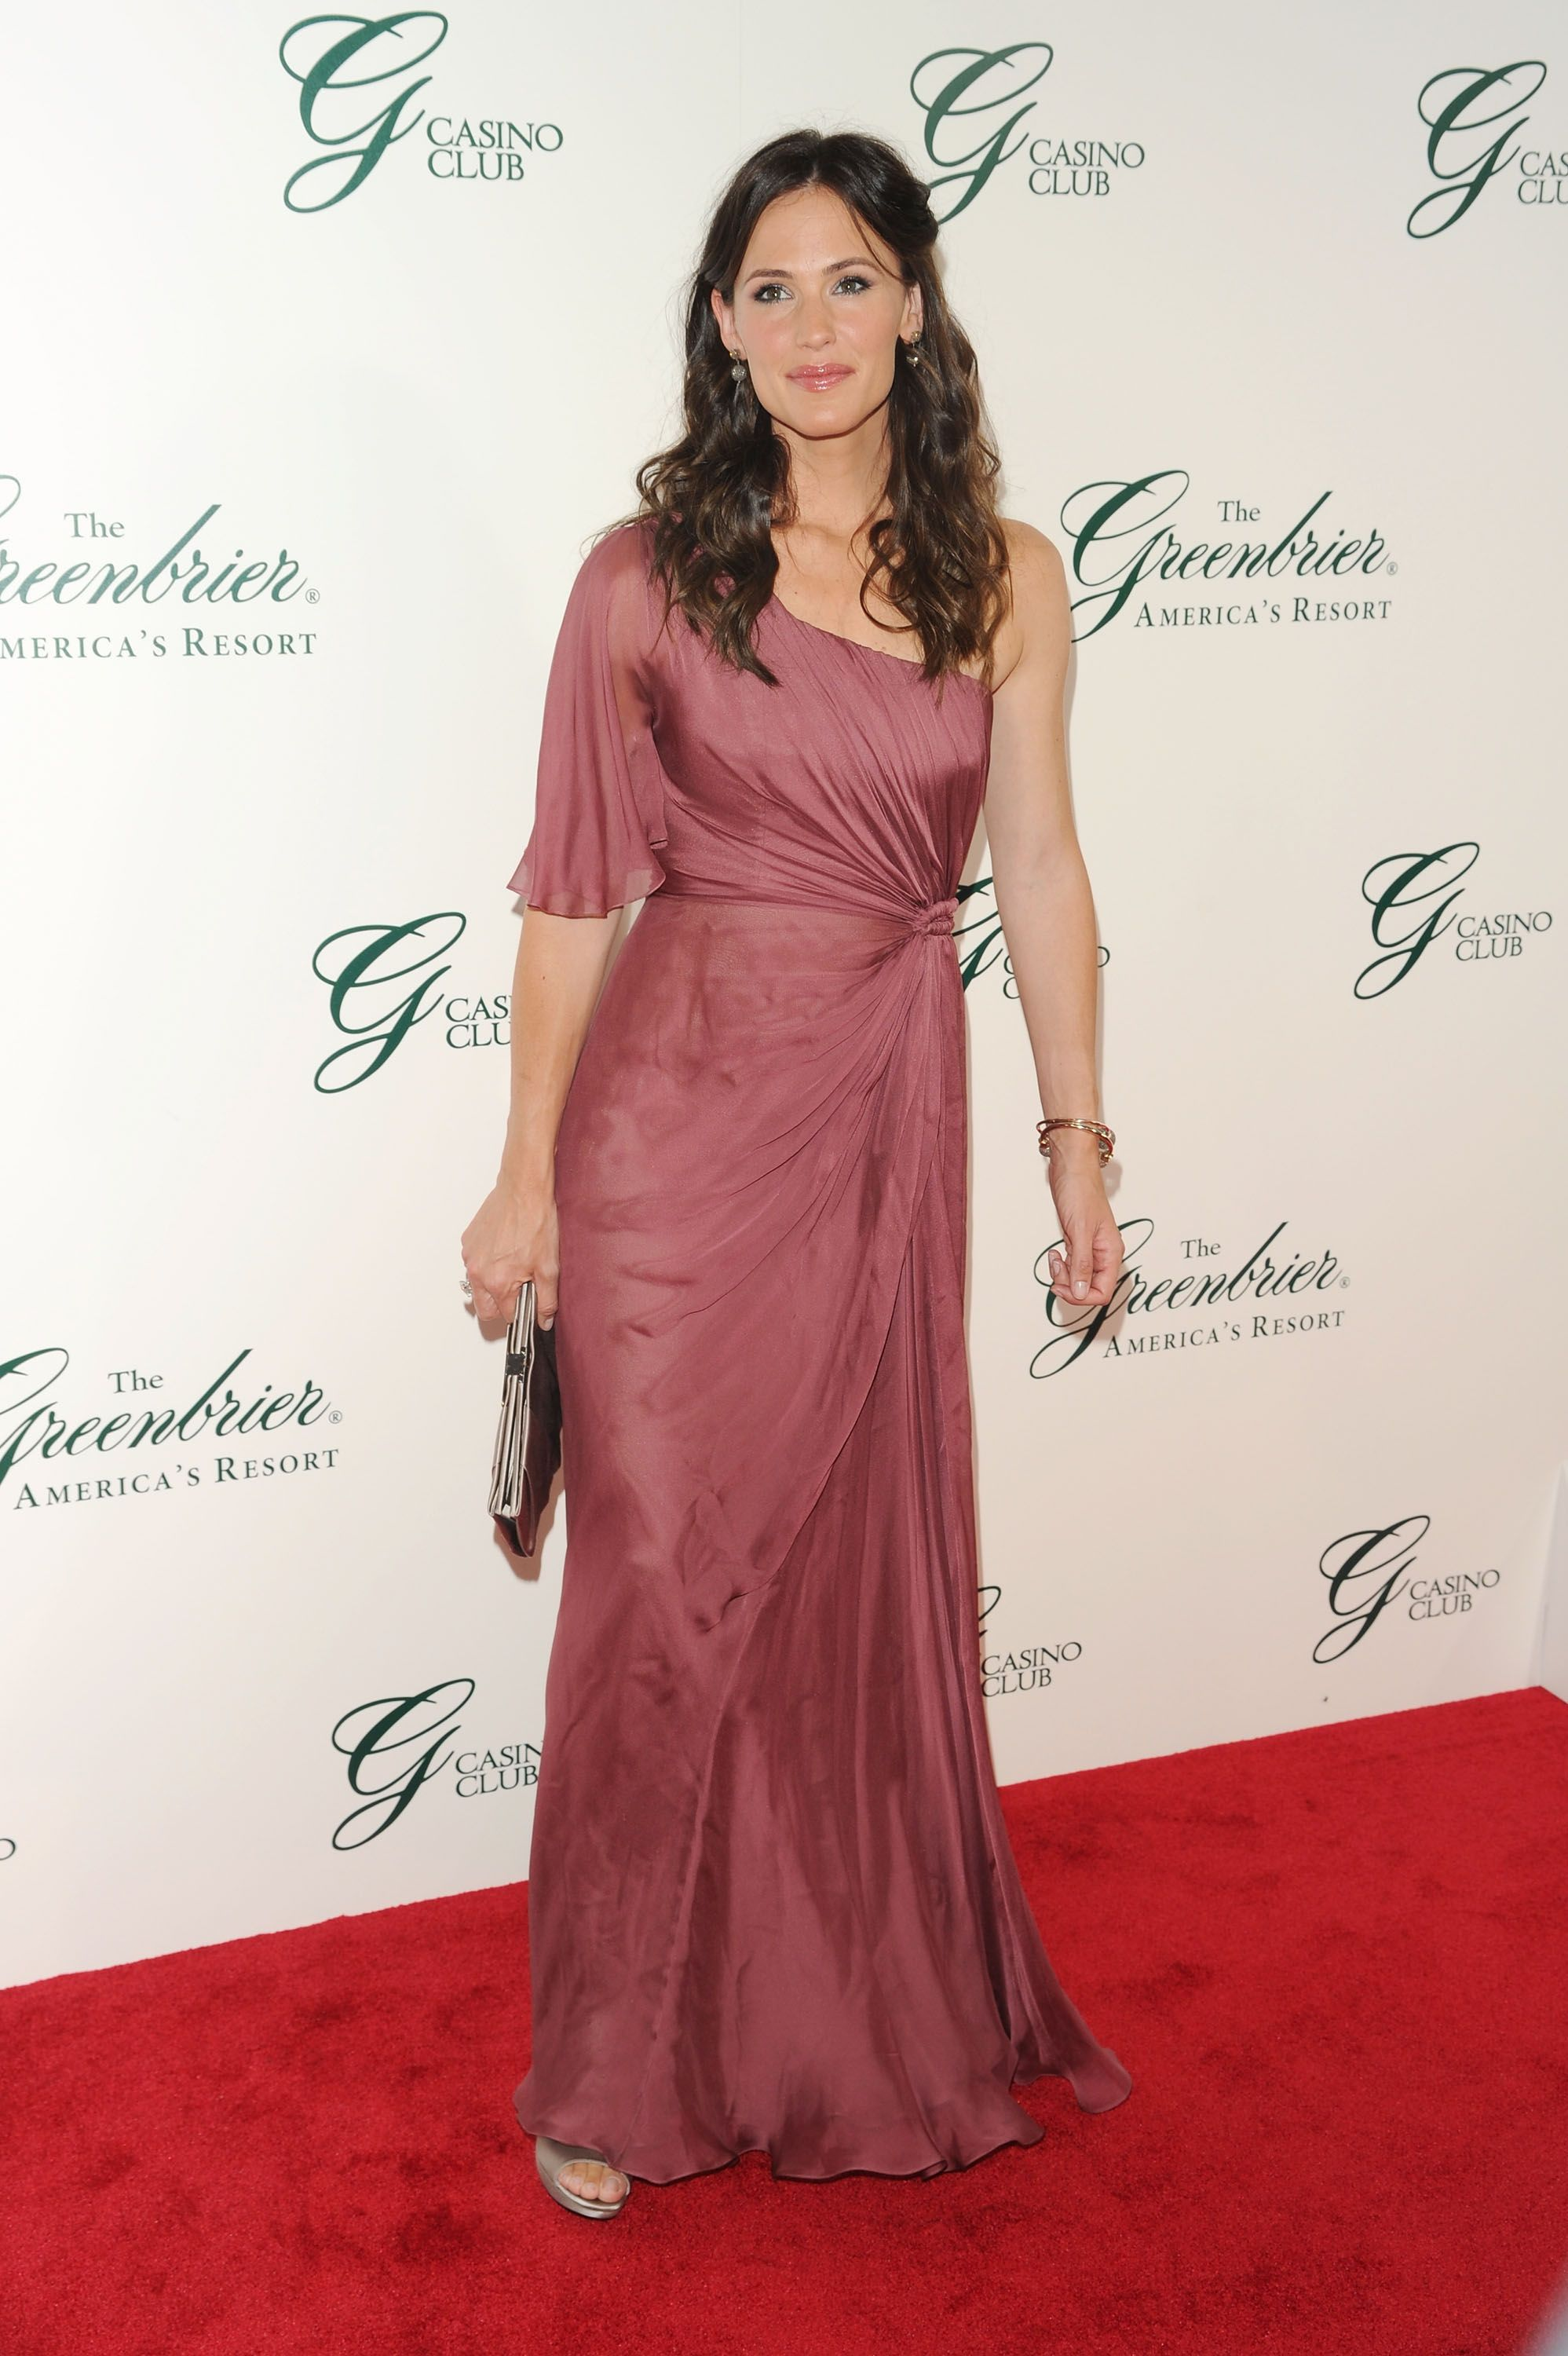 July 2, 2010 At The Greenbrier for the gala opening of the Casino Club in White Sulphur Springs, West Virginia.